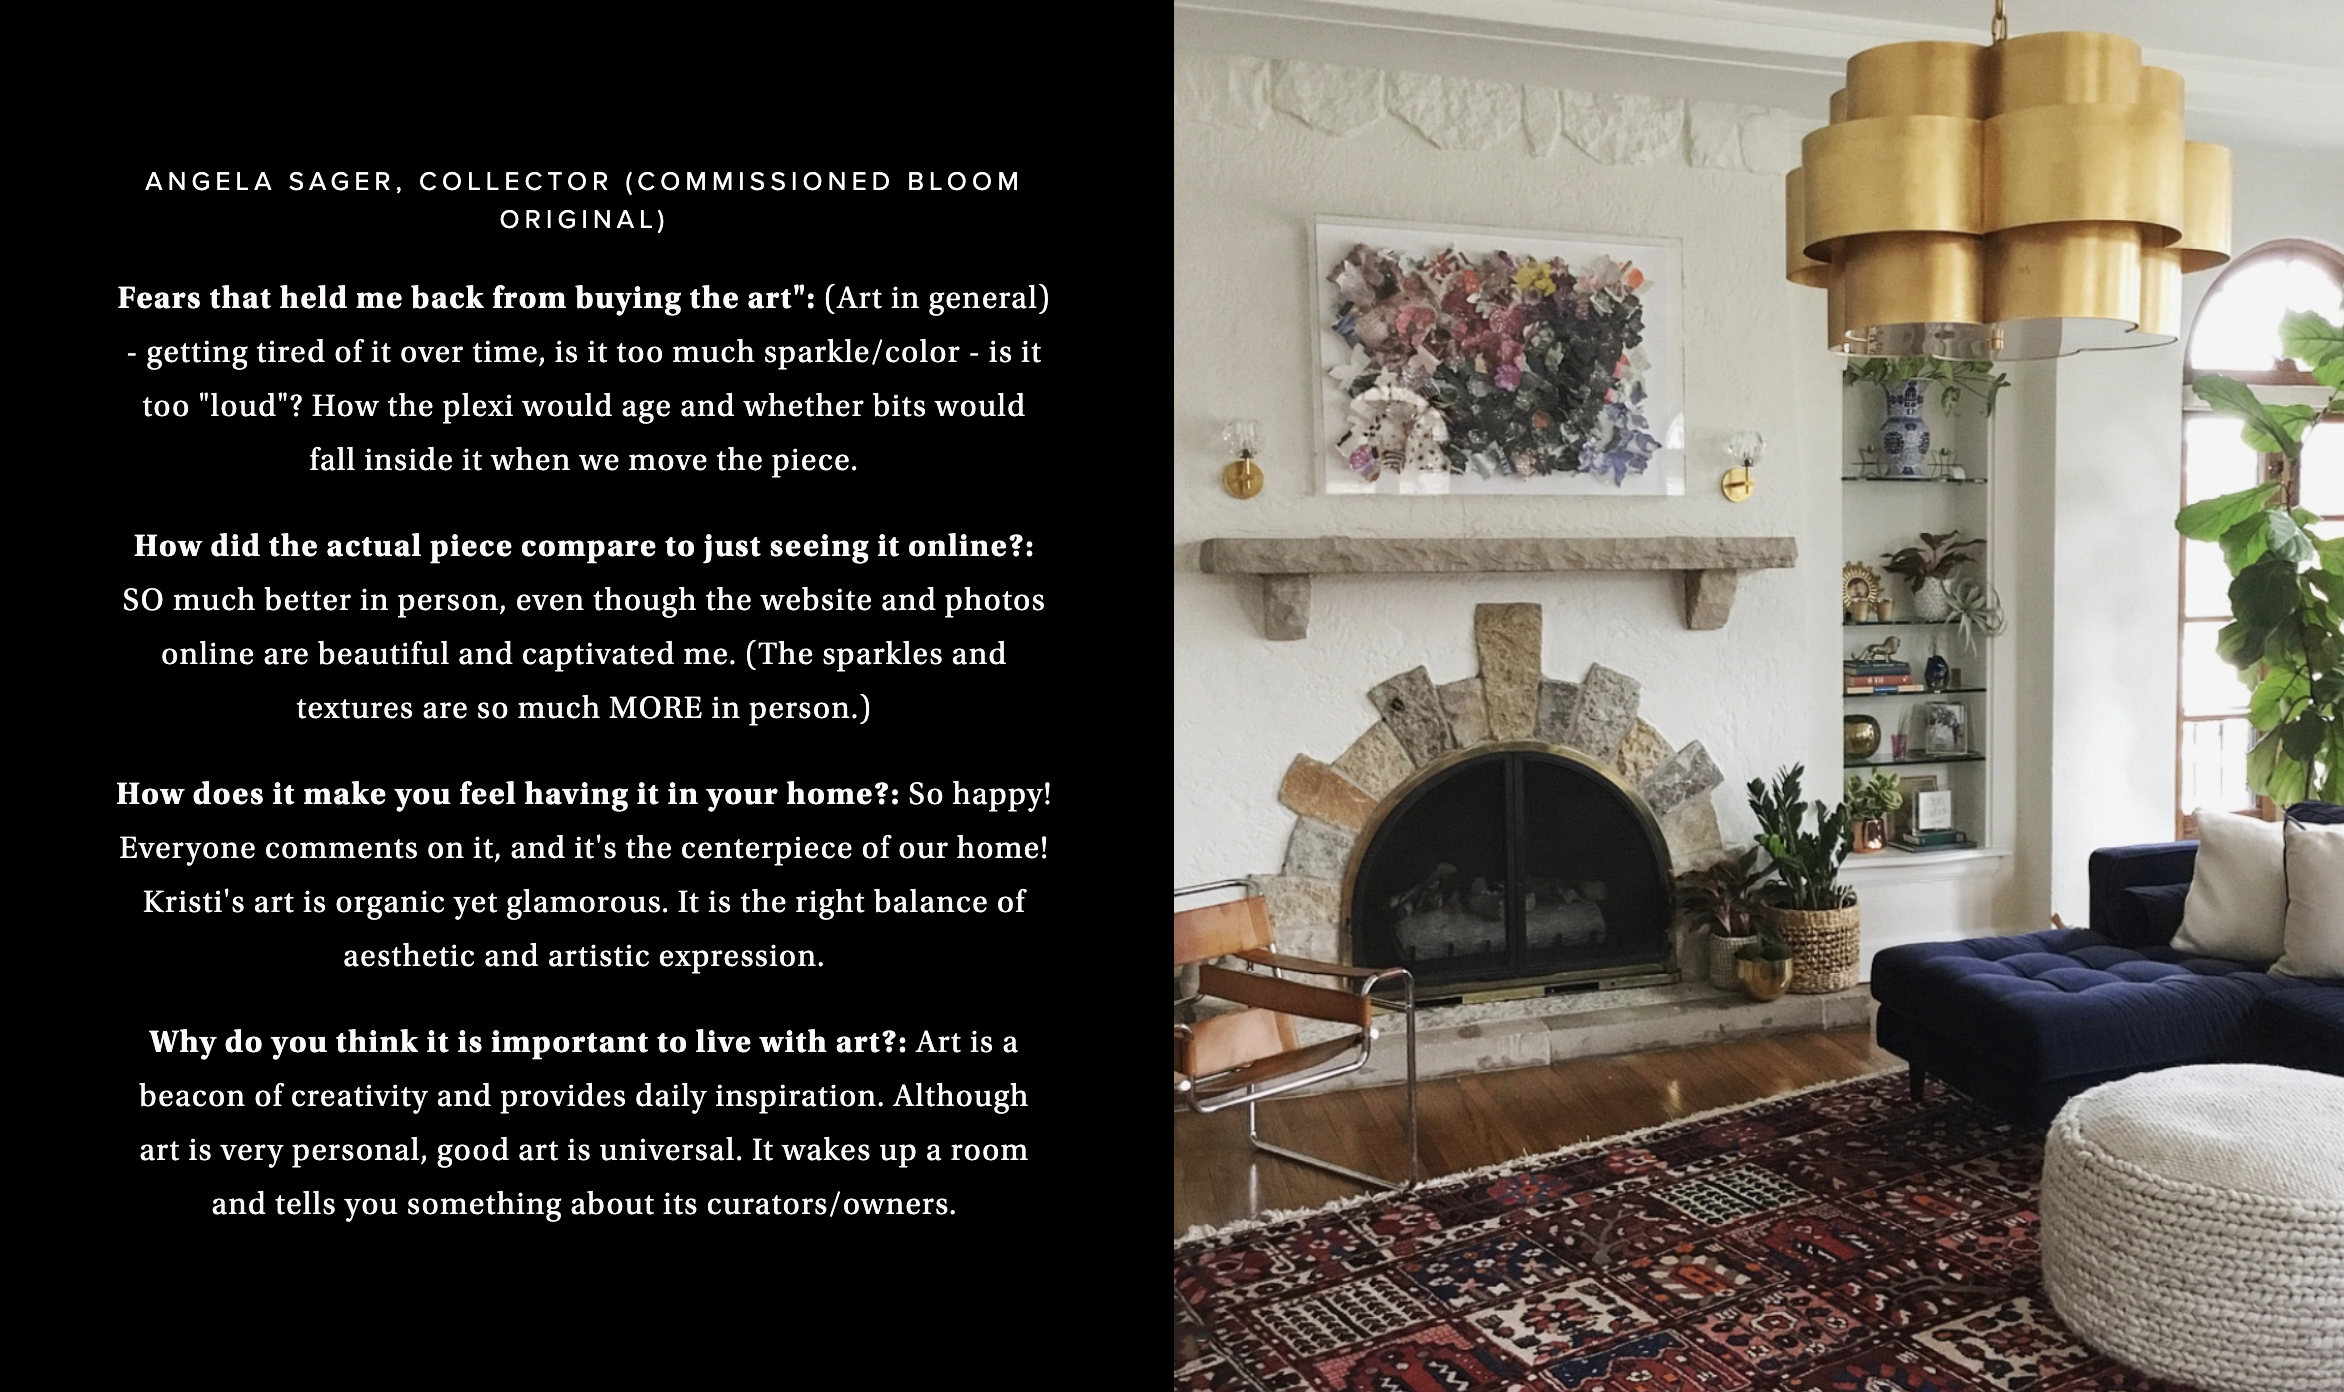 Kristi-Kohut-fine-art-in-homes-collector-reviews561.png